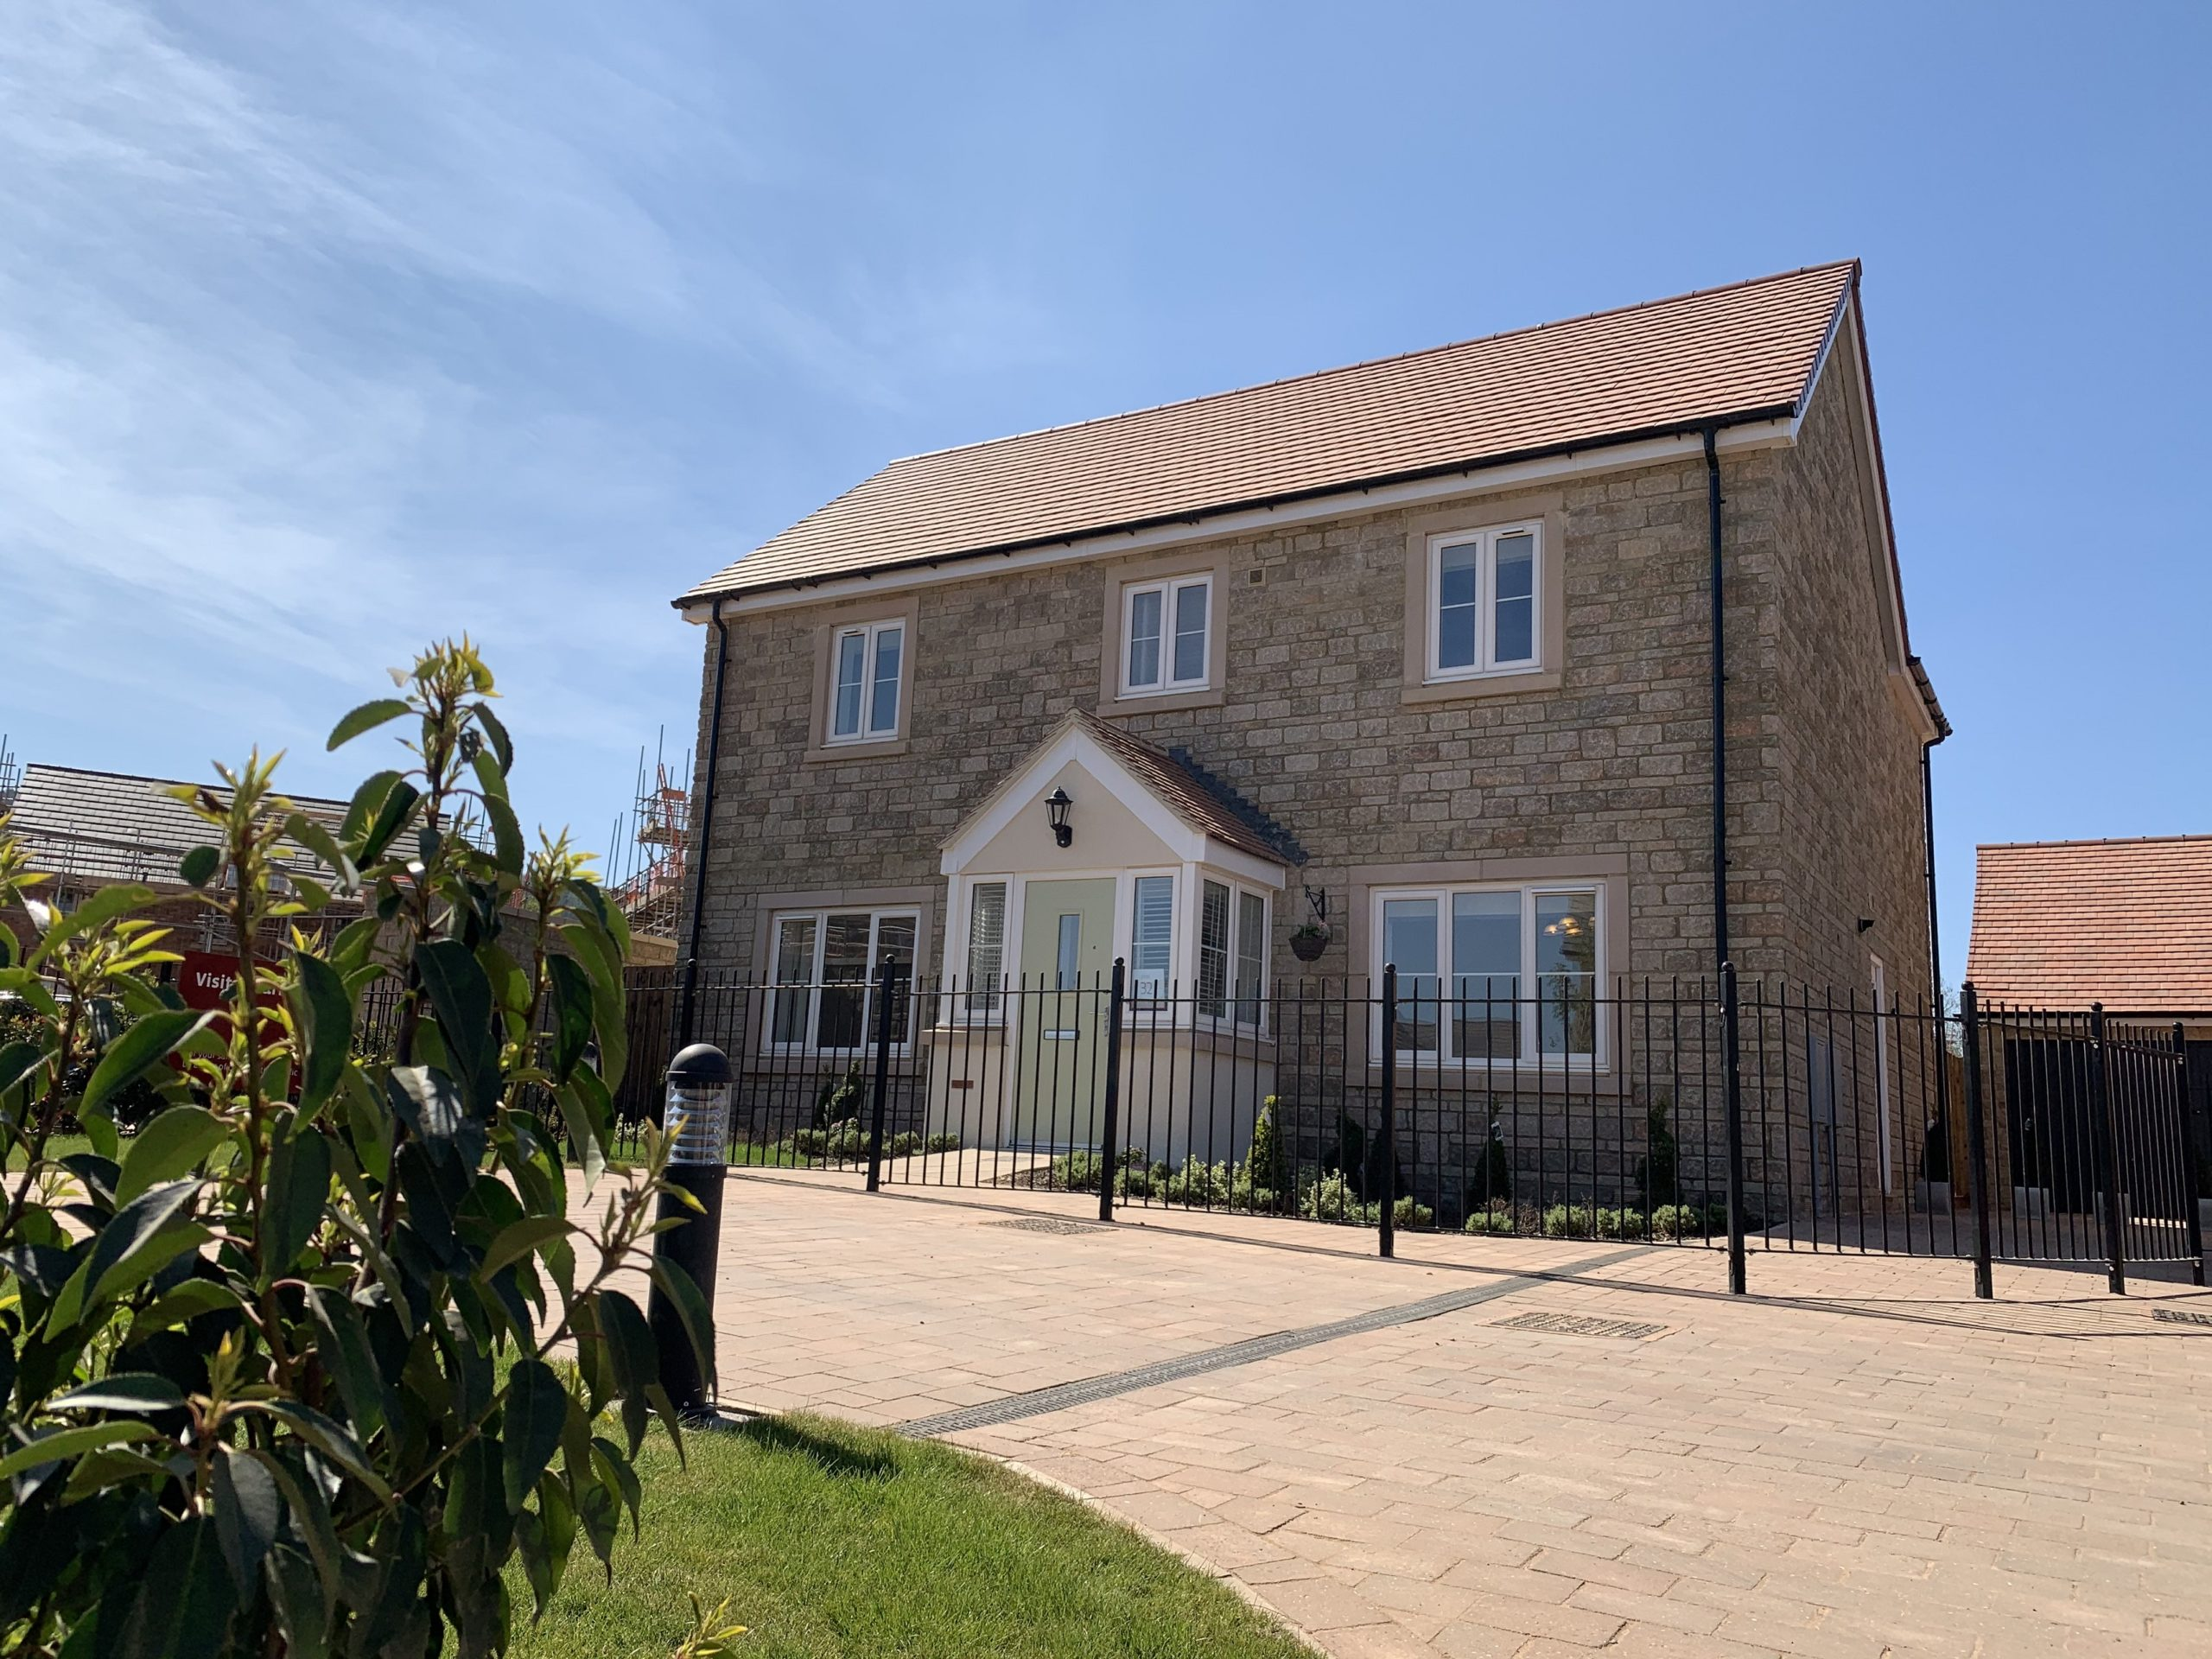 New showhome in North Somerset